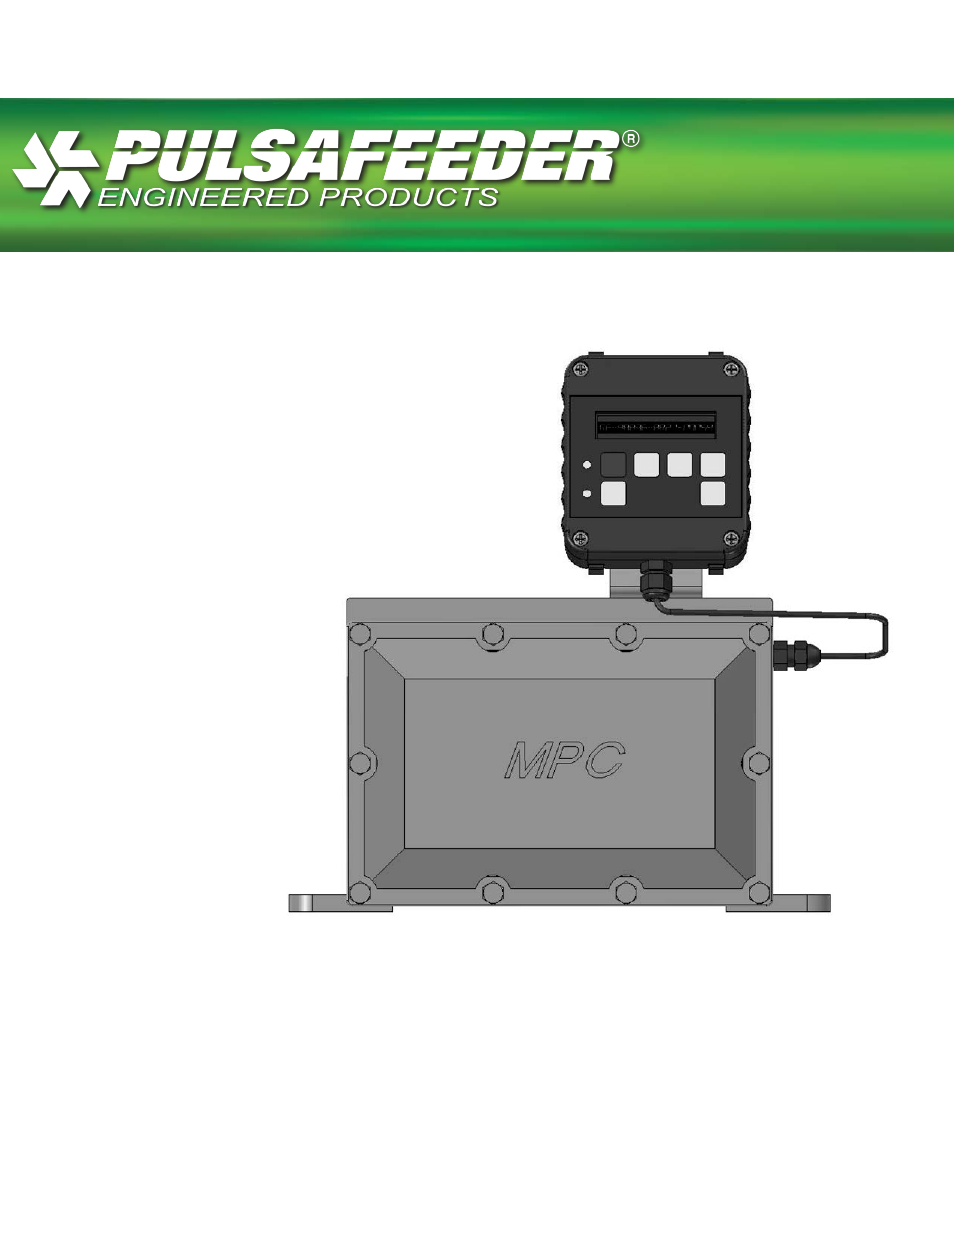 Pulsafeeder 25hl Operation And Maintenance Manual